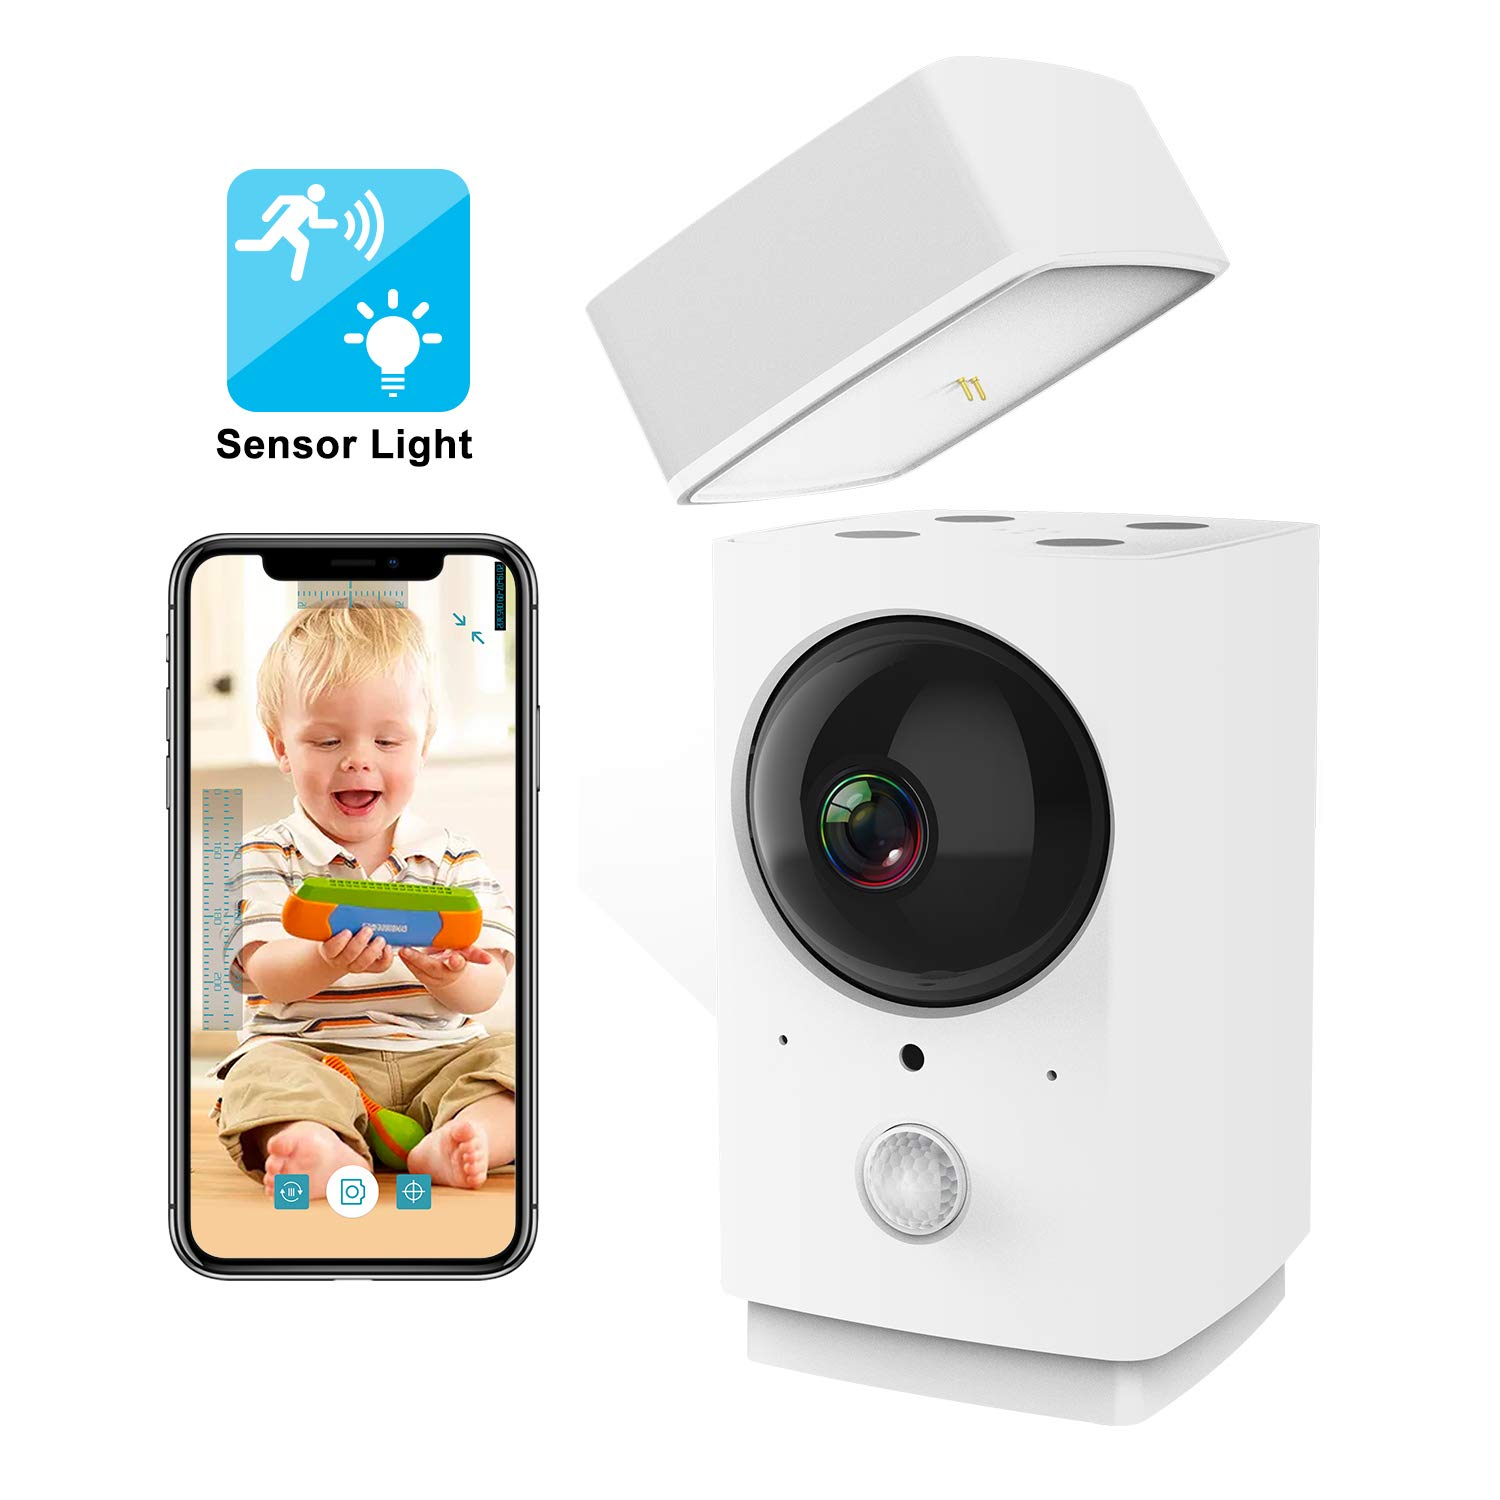 Indoor WiFi Camera with Sensor Light, Rreslicam 1080P 360-degree Wireless IP Camera, Home Security Camera, Pet Nanny Cam Baby Monitor,Motion Tracking,IR Night Vision,Two-Way Audio,Work with Aleax